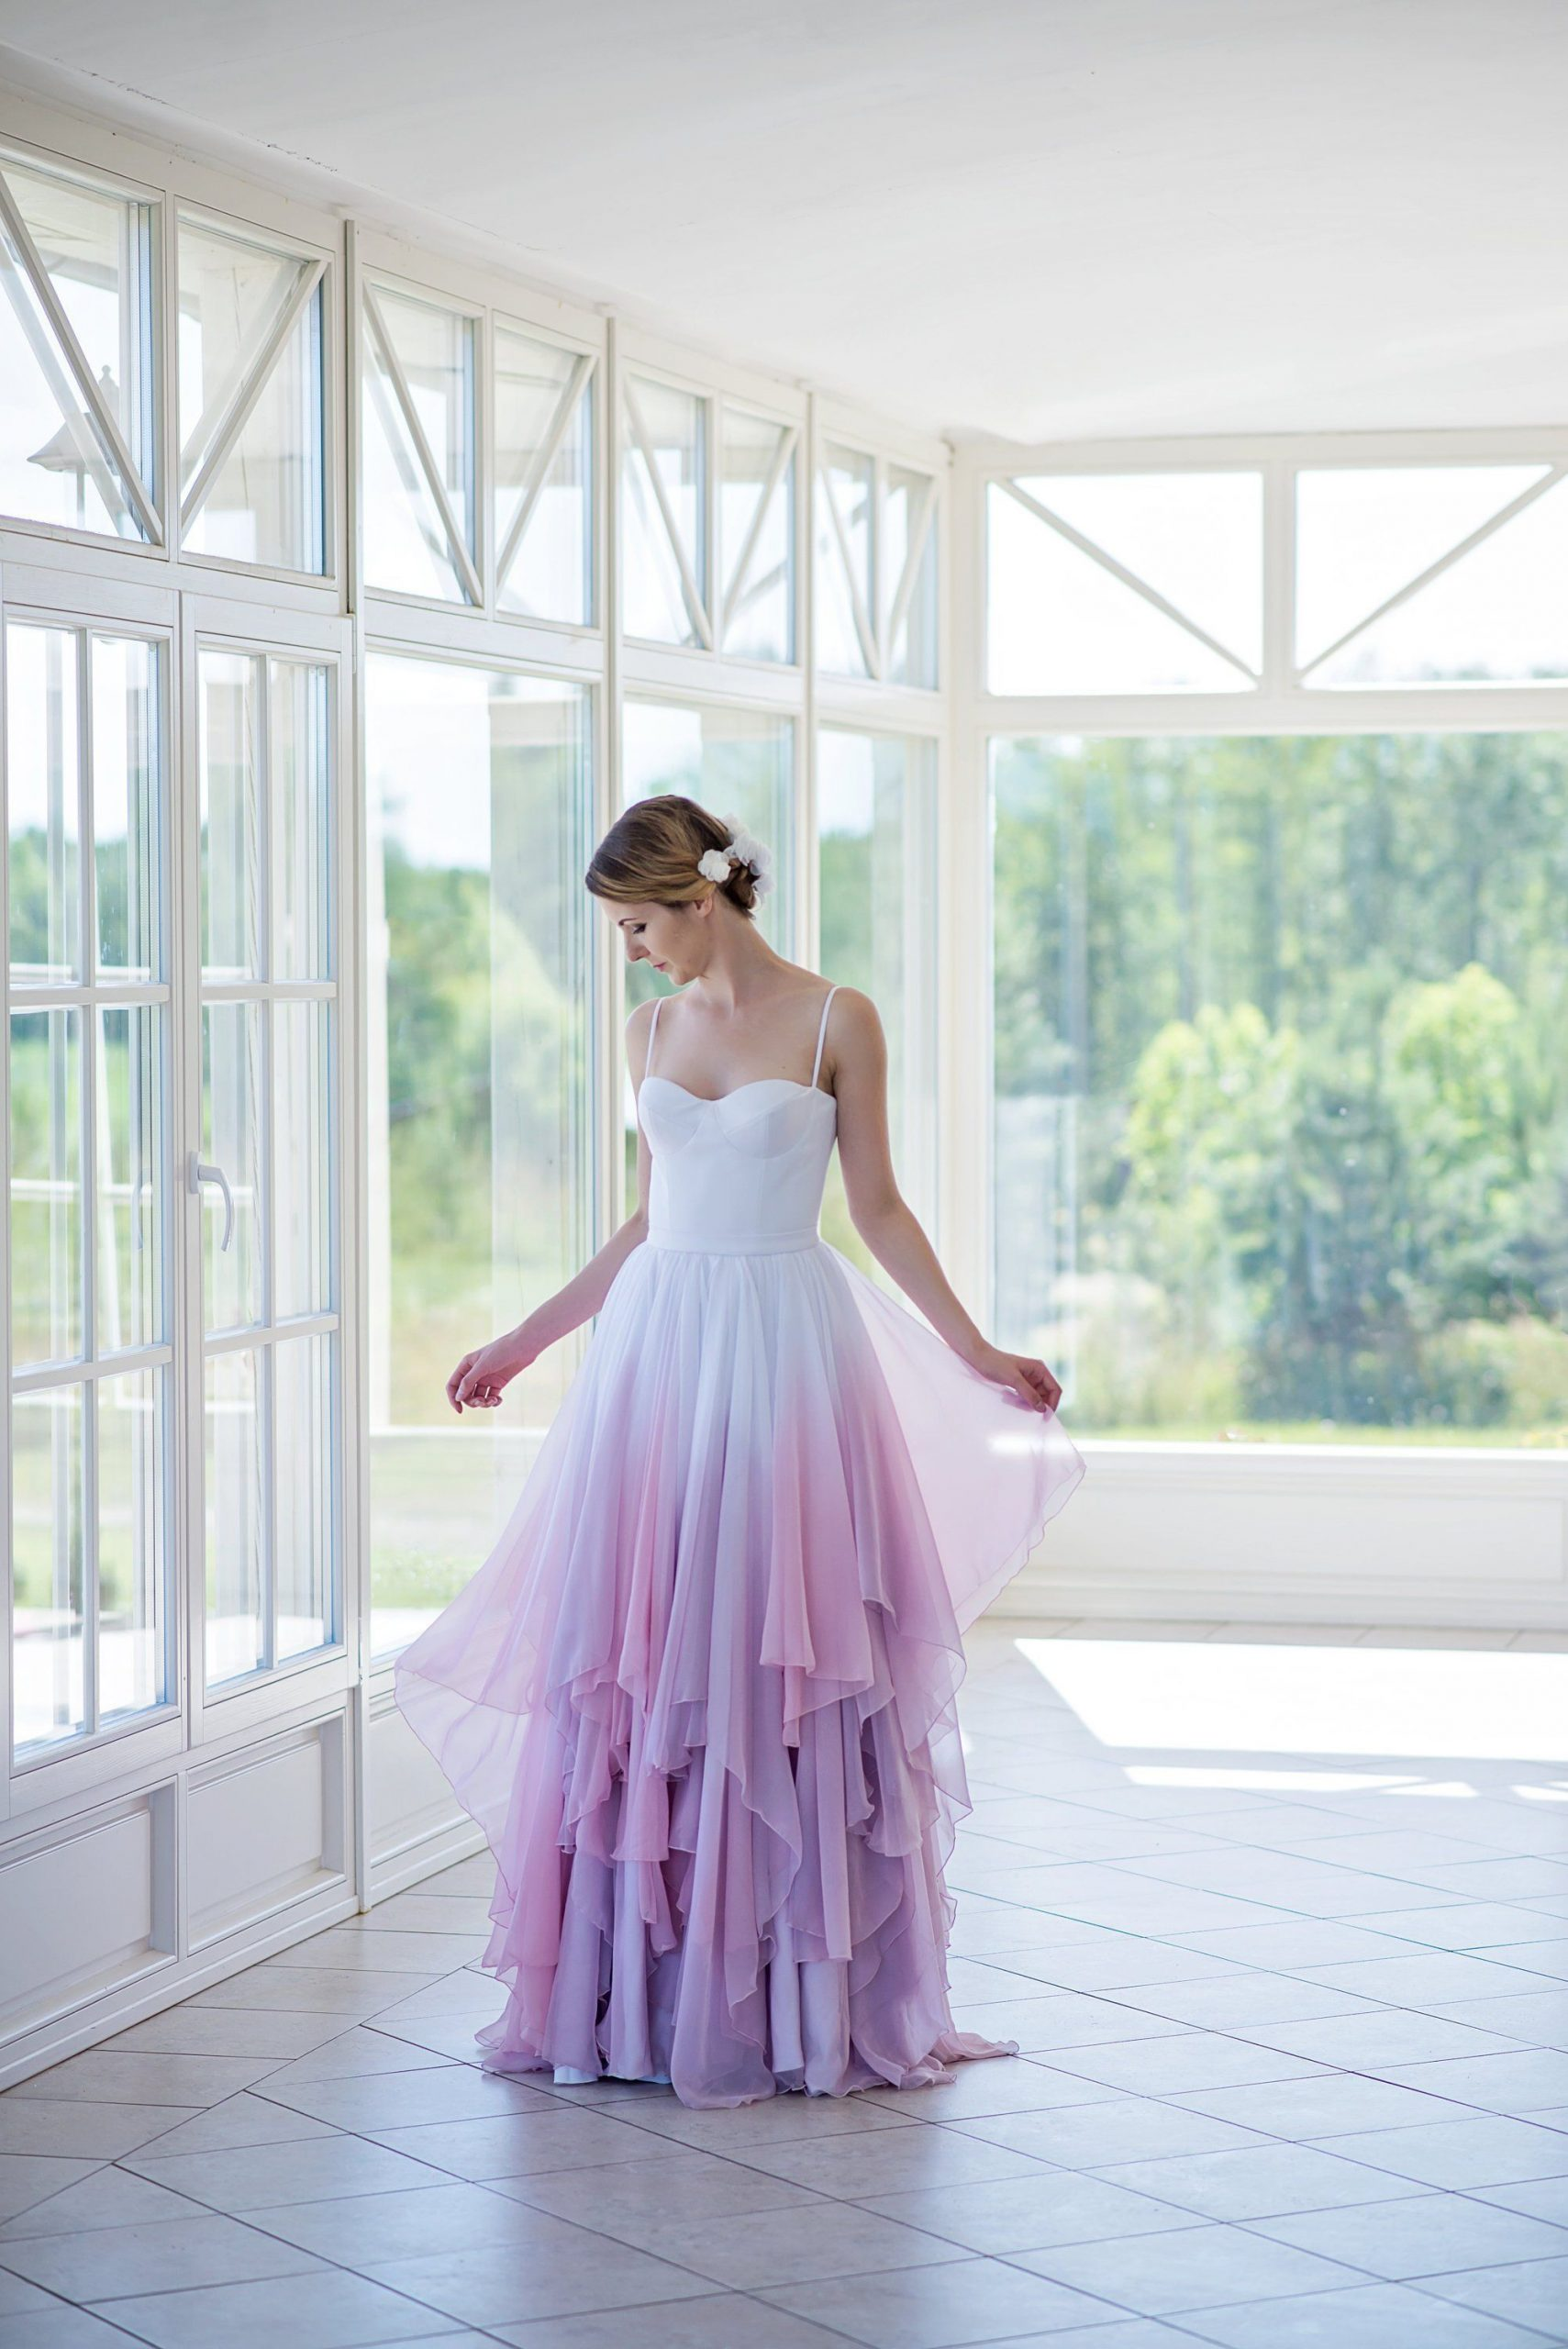 Ombre Wedding Dress Flowing Chiffon Bridal Gown Colorful